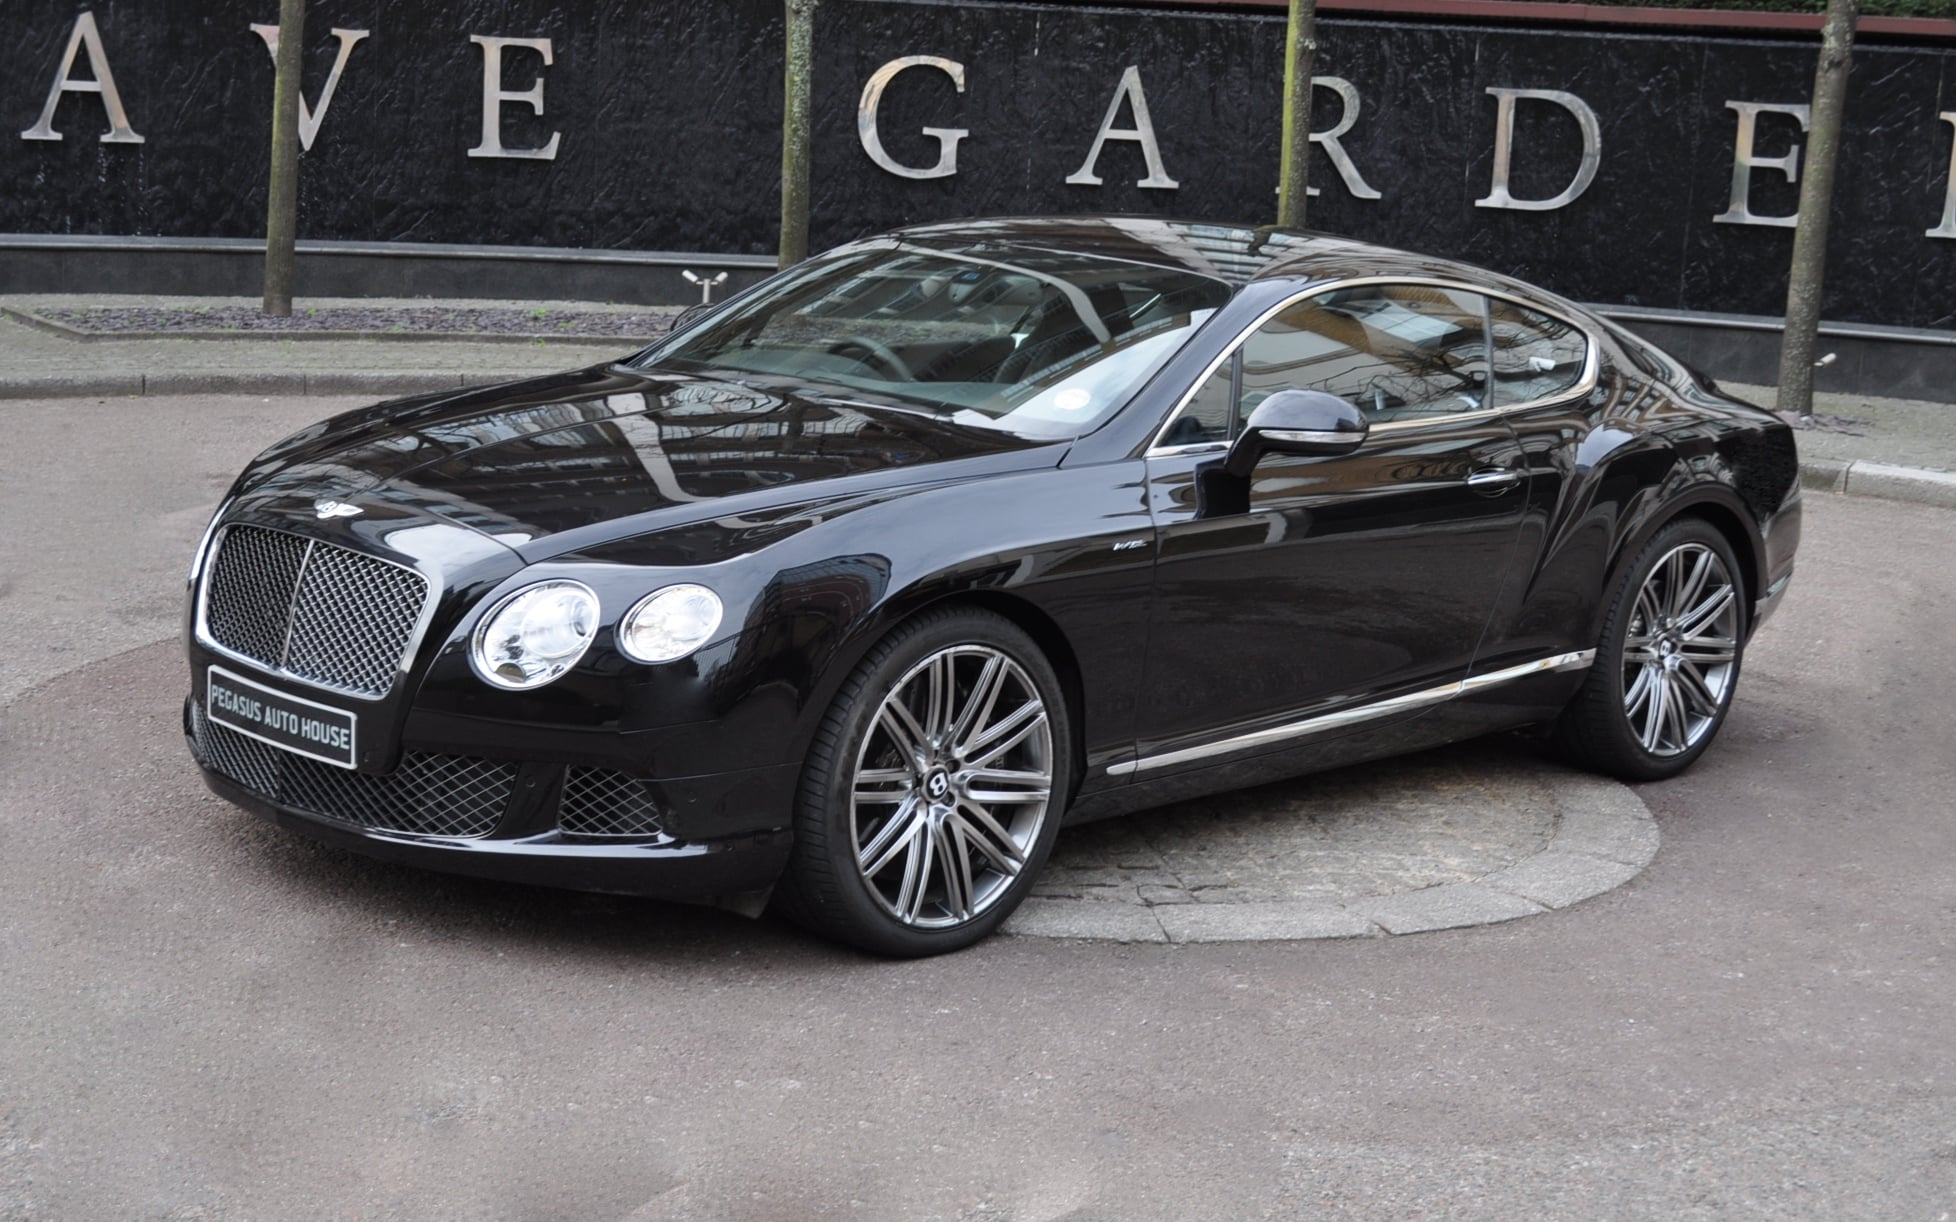 ... Close Doors Keyless start Adjustable suspension Adjustable spoiler Electric steering column Power boot Auto dimming rear view mirror Rain Sensing ... & RHD Bentley Continental GT Speed - Pegasus Auto House